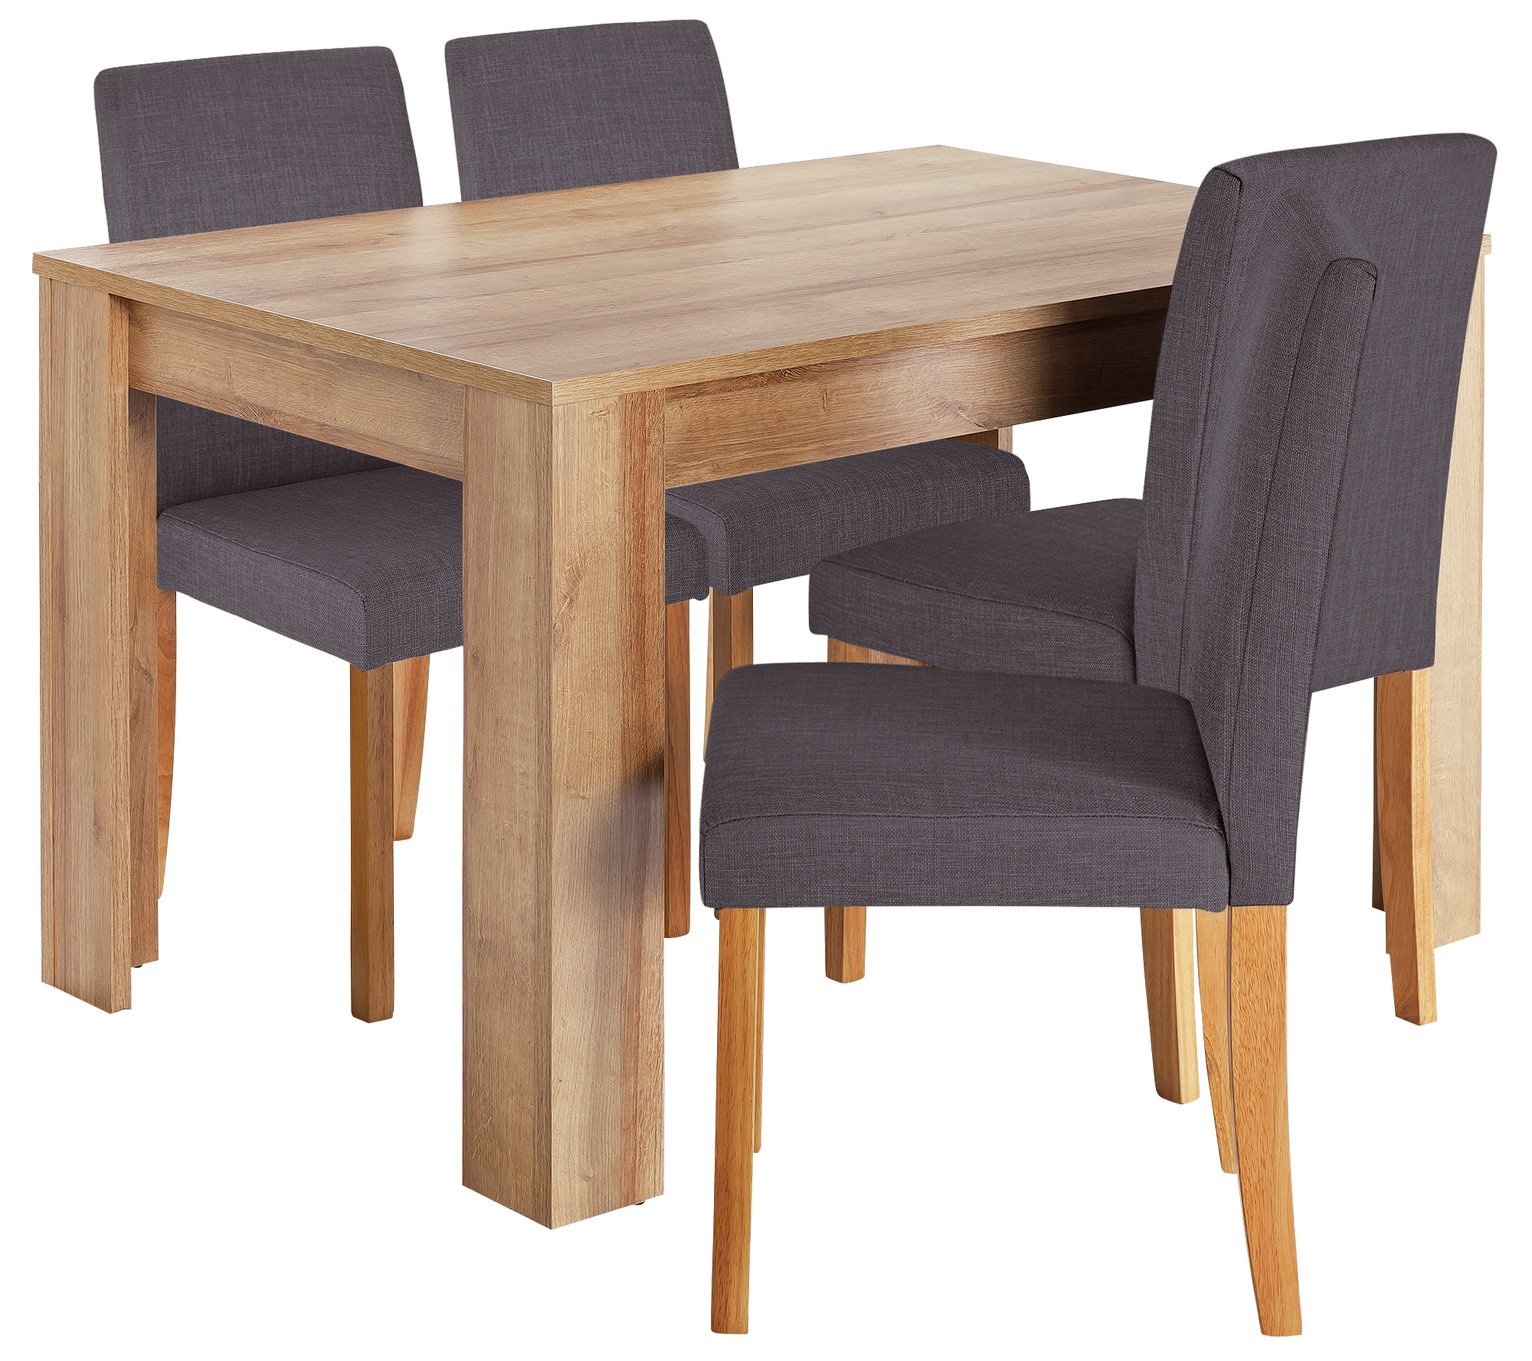 Image of HOME Miami Dining Table & 4 Chairs - Charcoal